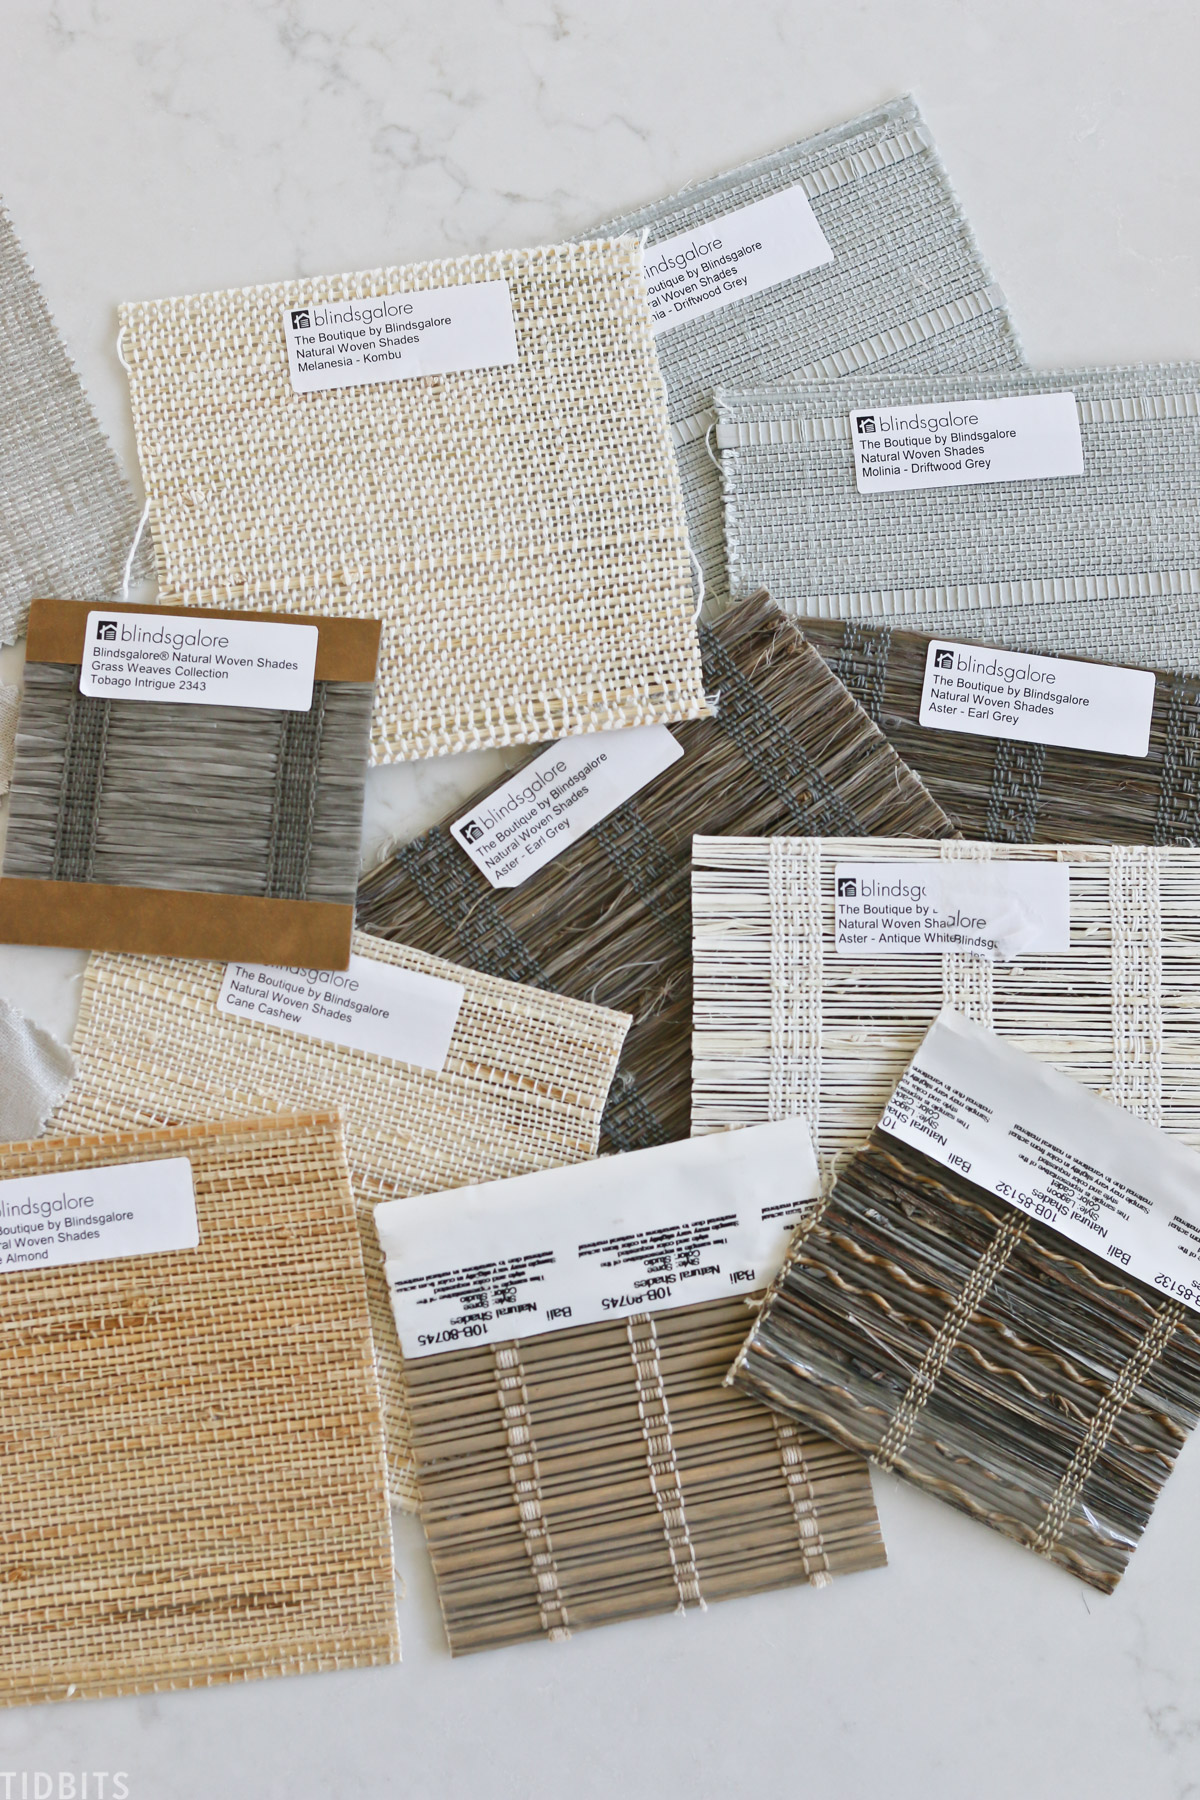 samples of window blinds